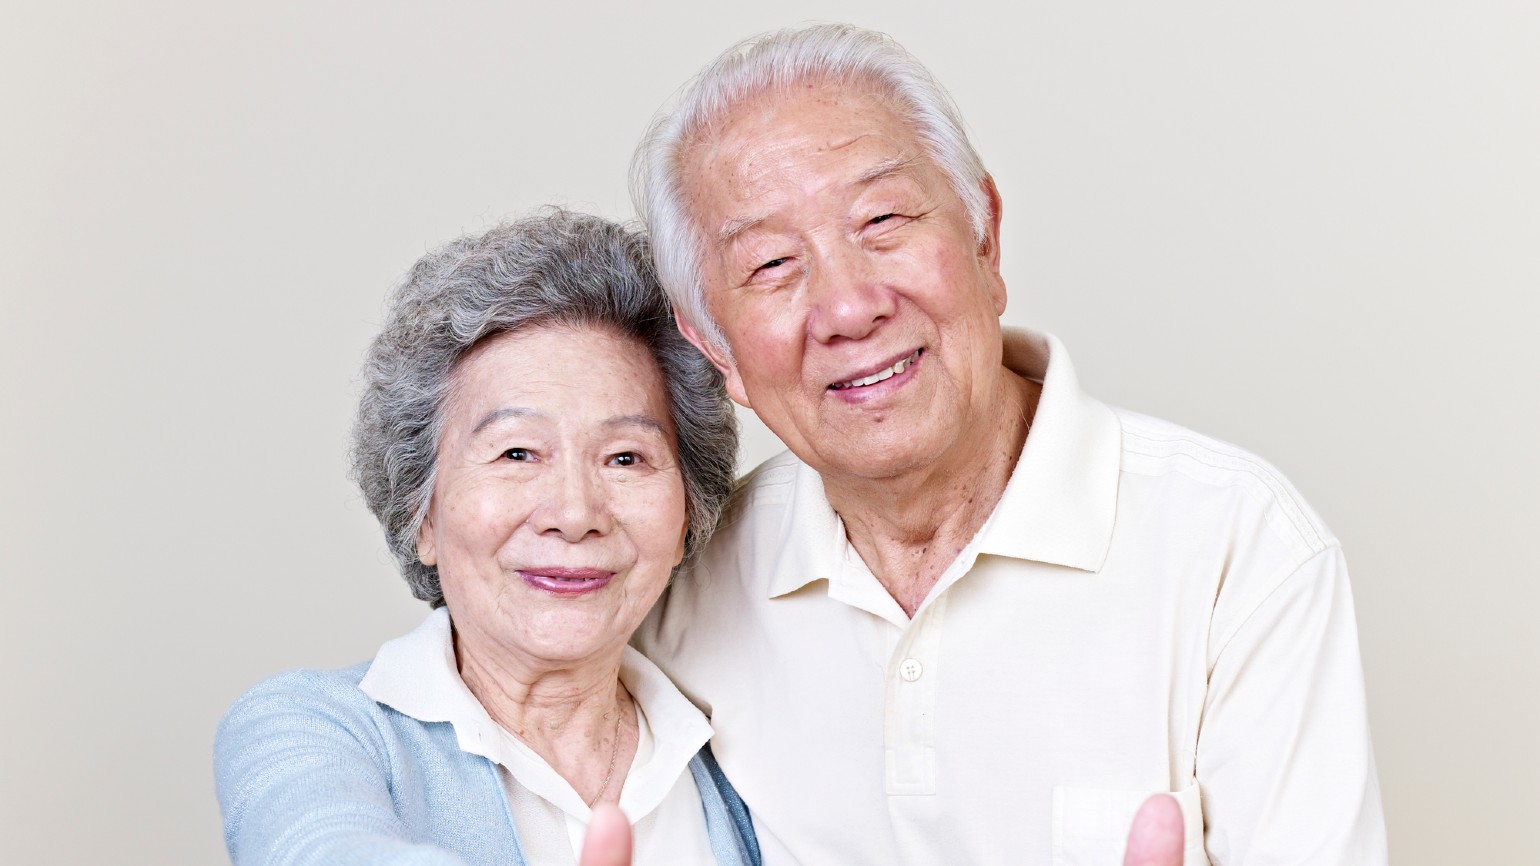 An elderly couple doing a thumbs-up